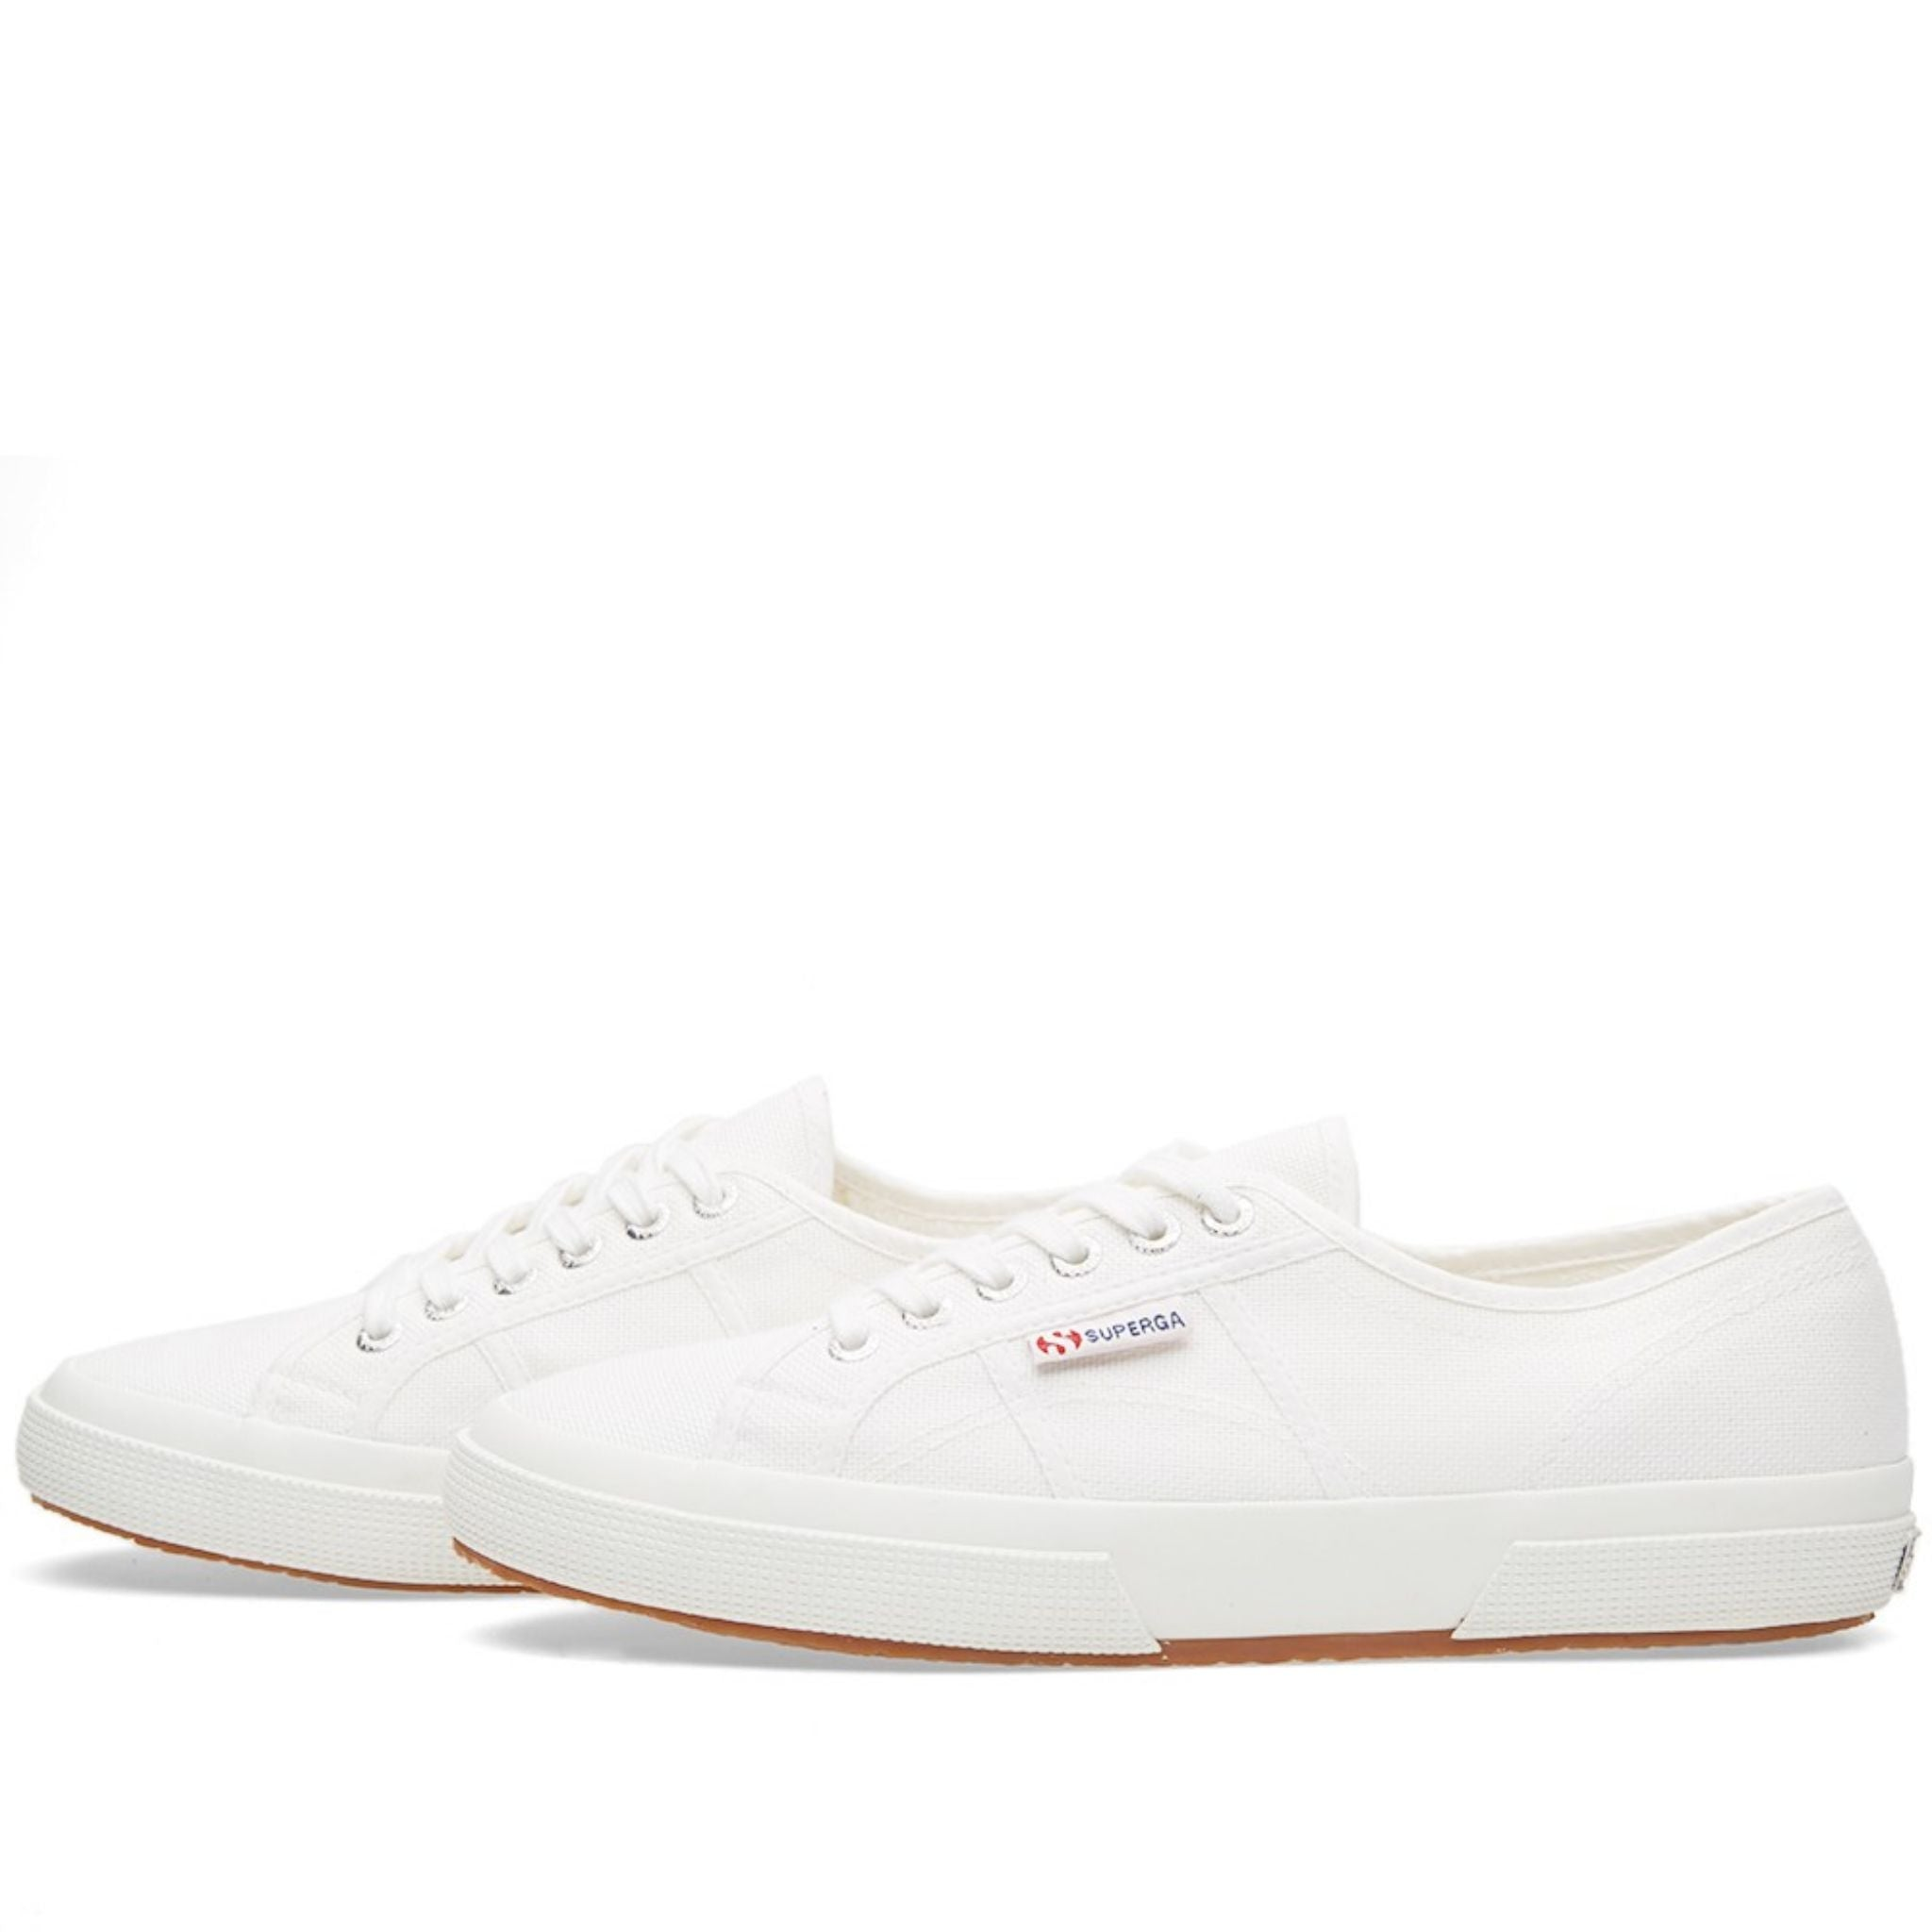 White classic sneakers Superga 2750 cotu canvas